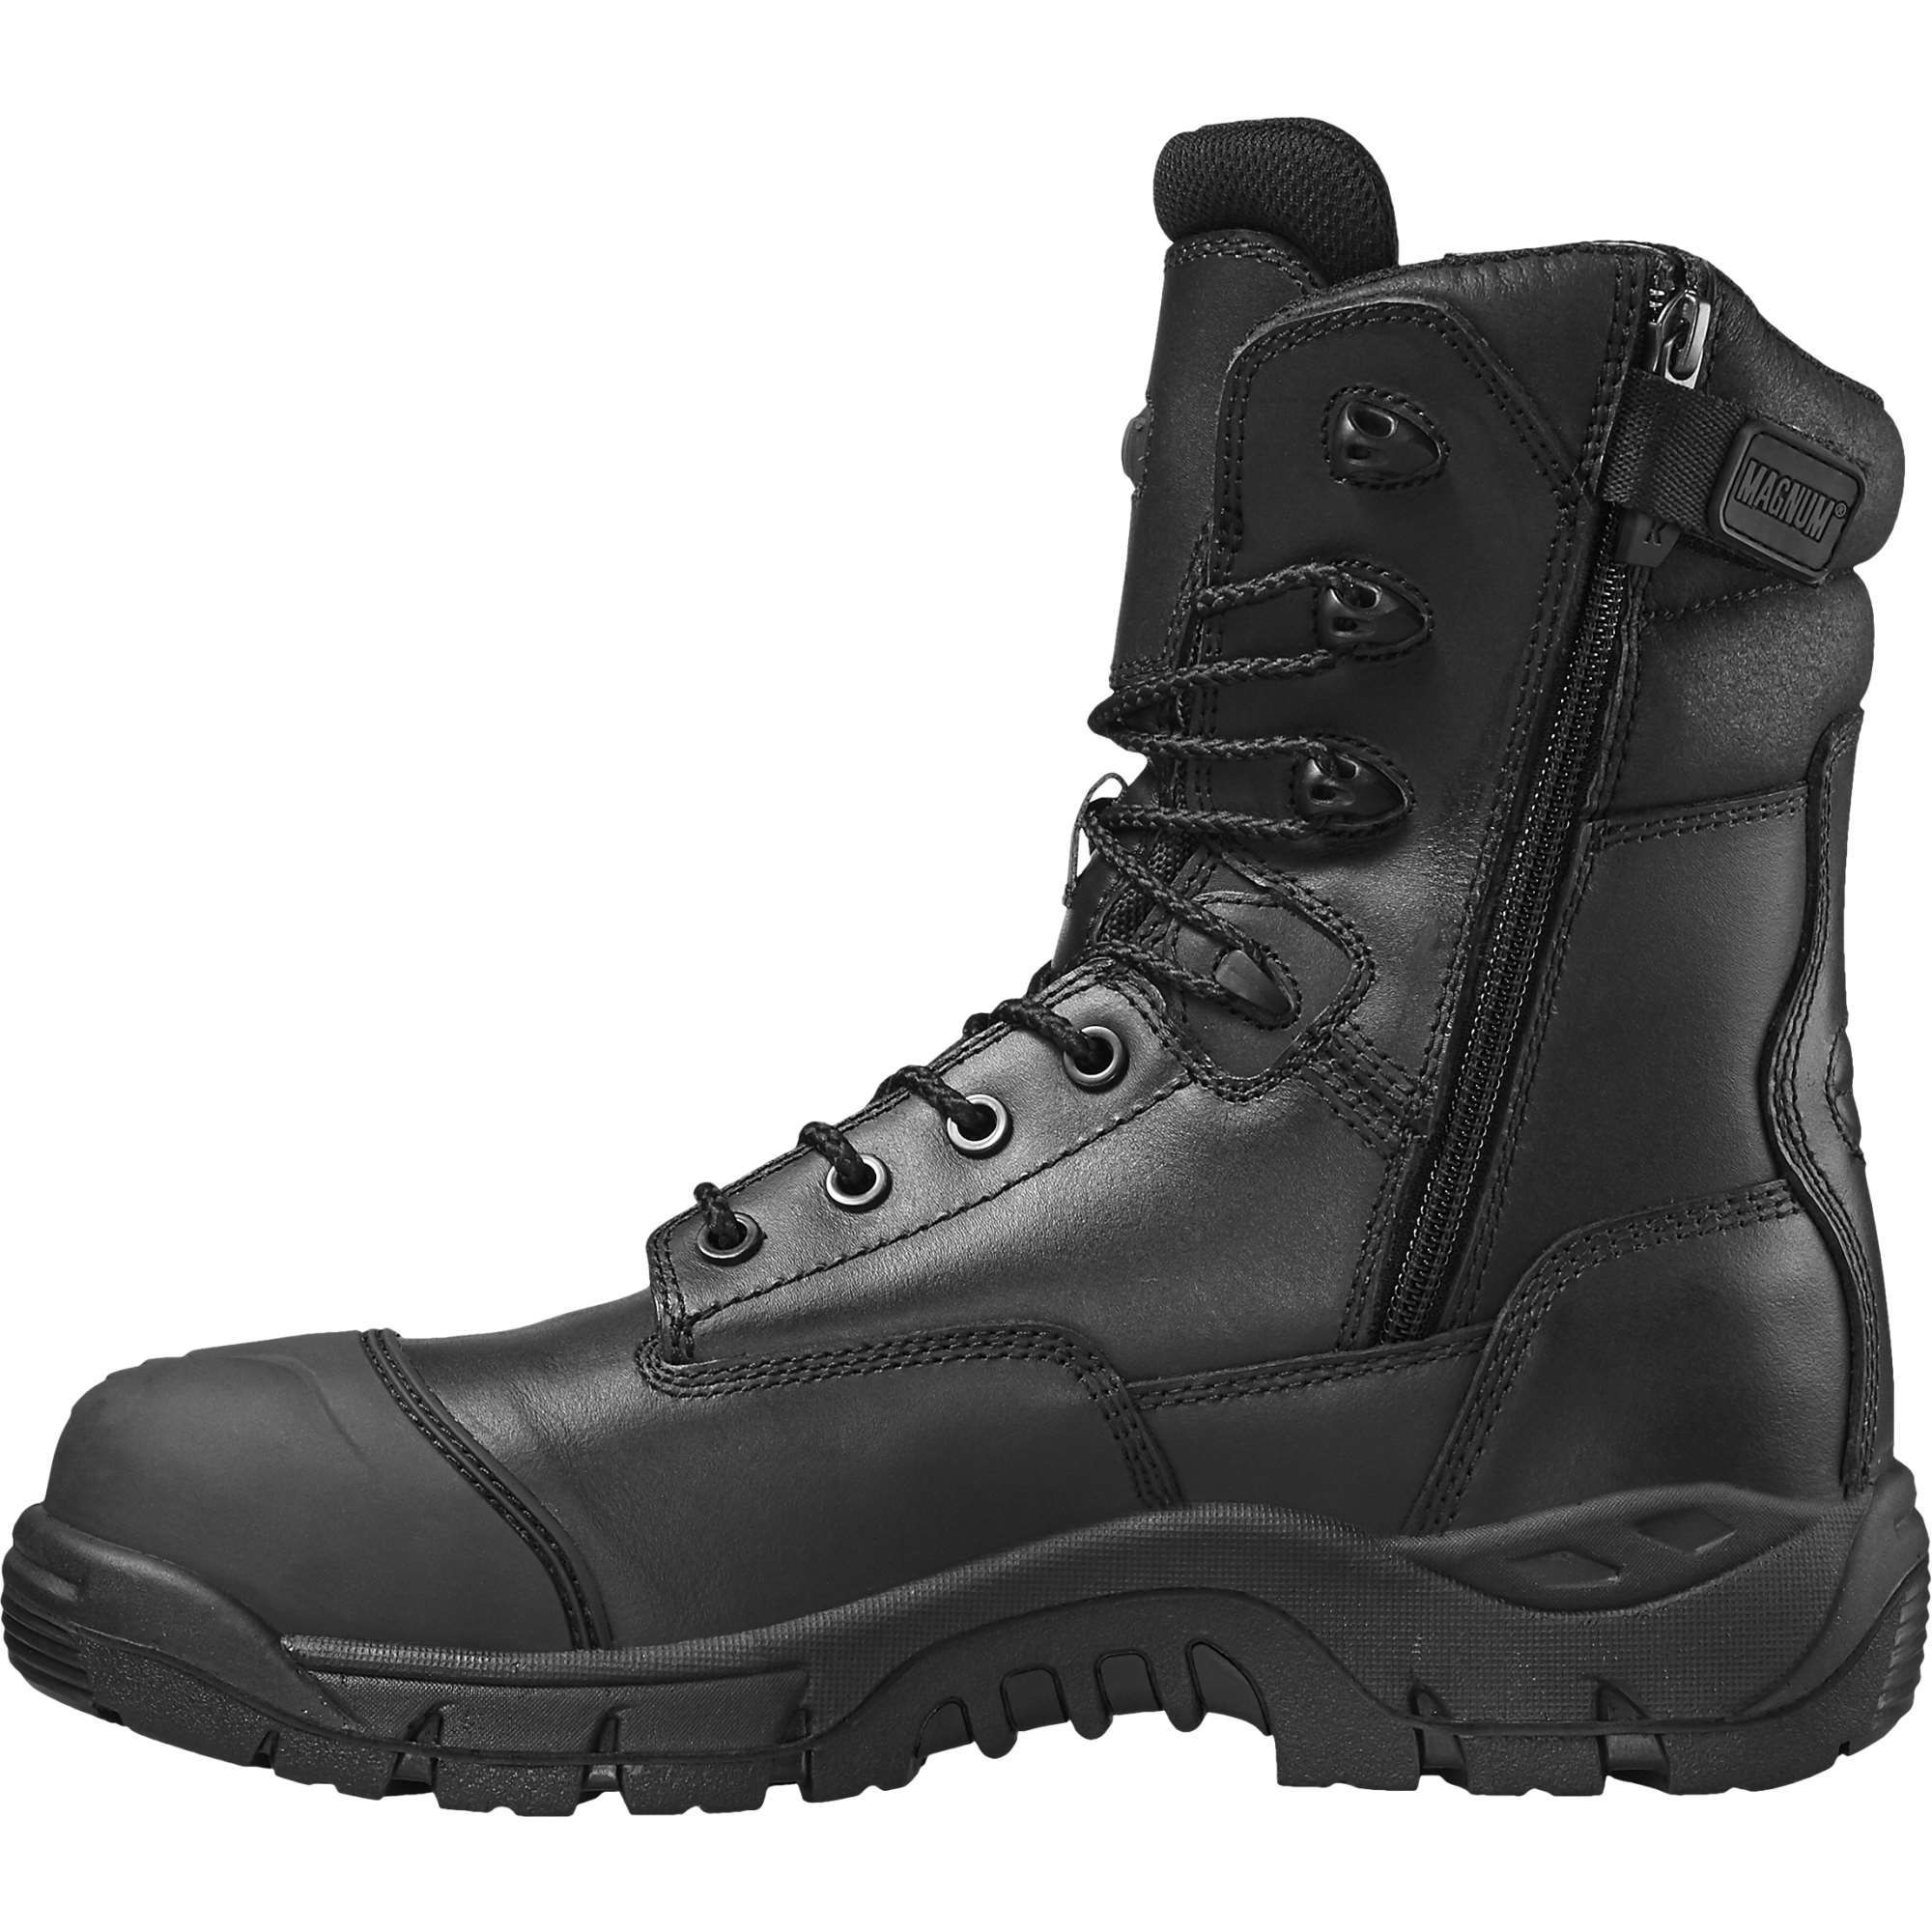 Magnum Rigmaster Sidezip Waterproof Safety Boot